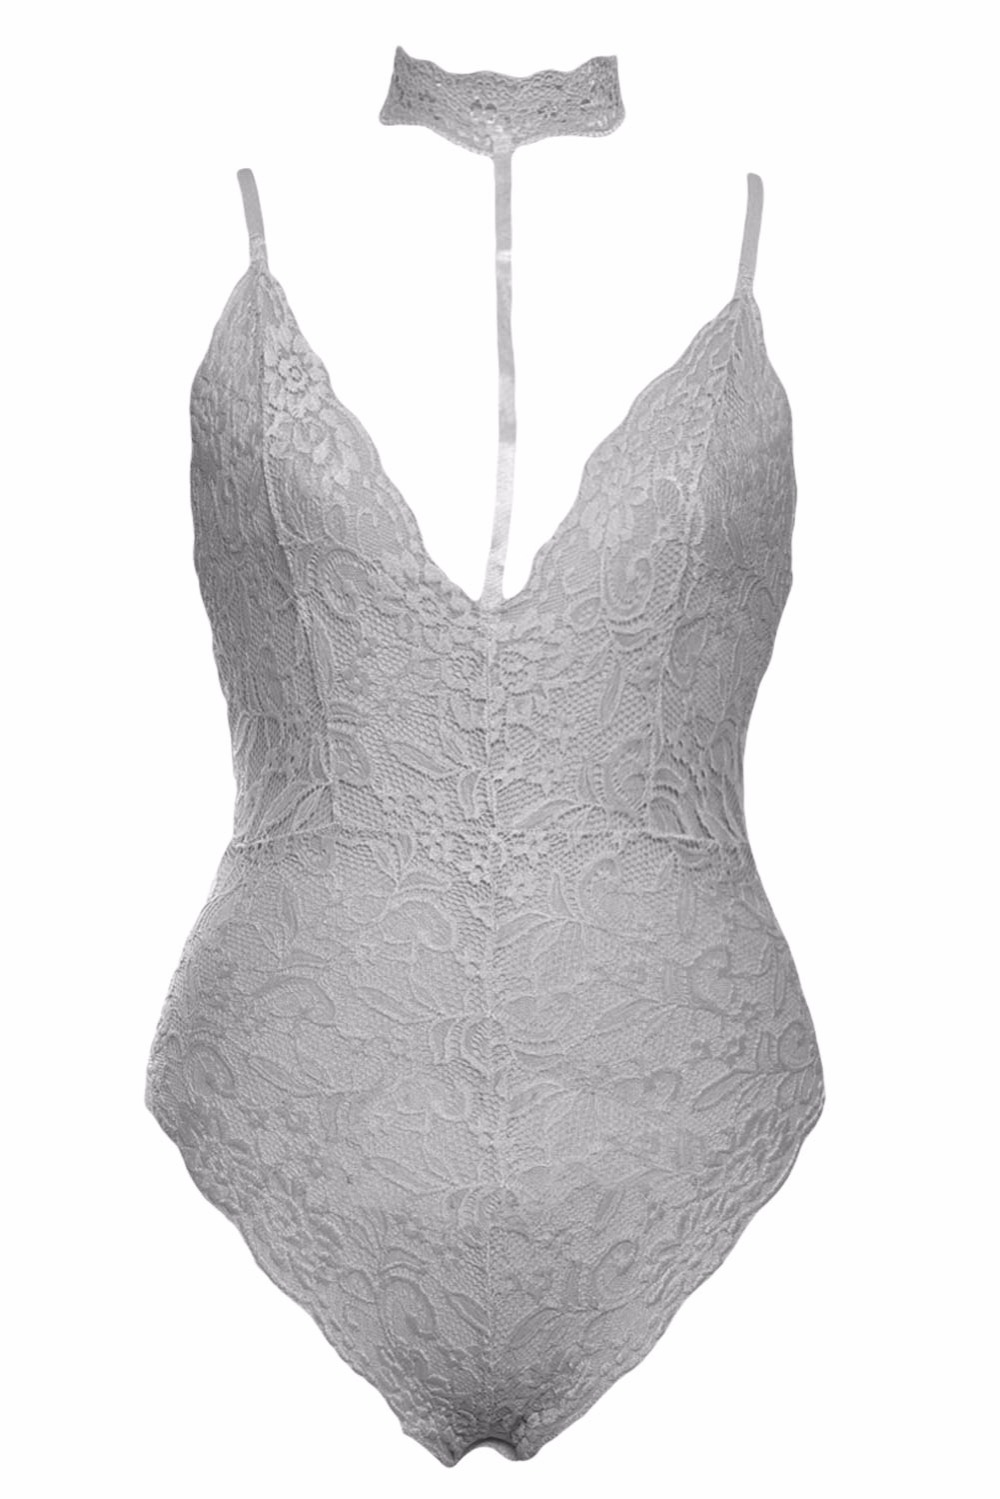 Grey-Sheer-Lace-Choker-Neck-Teddy-Lingerie-LC32139-11-2